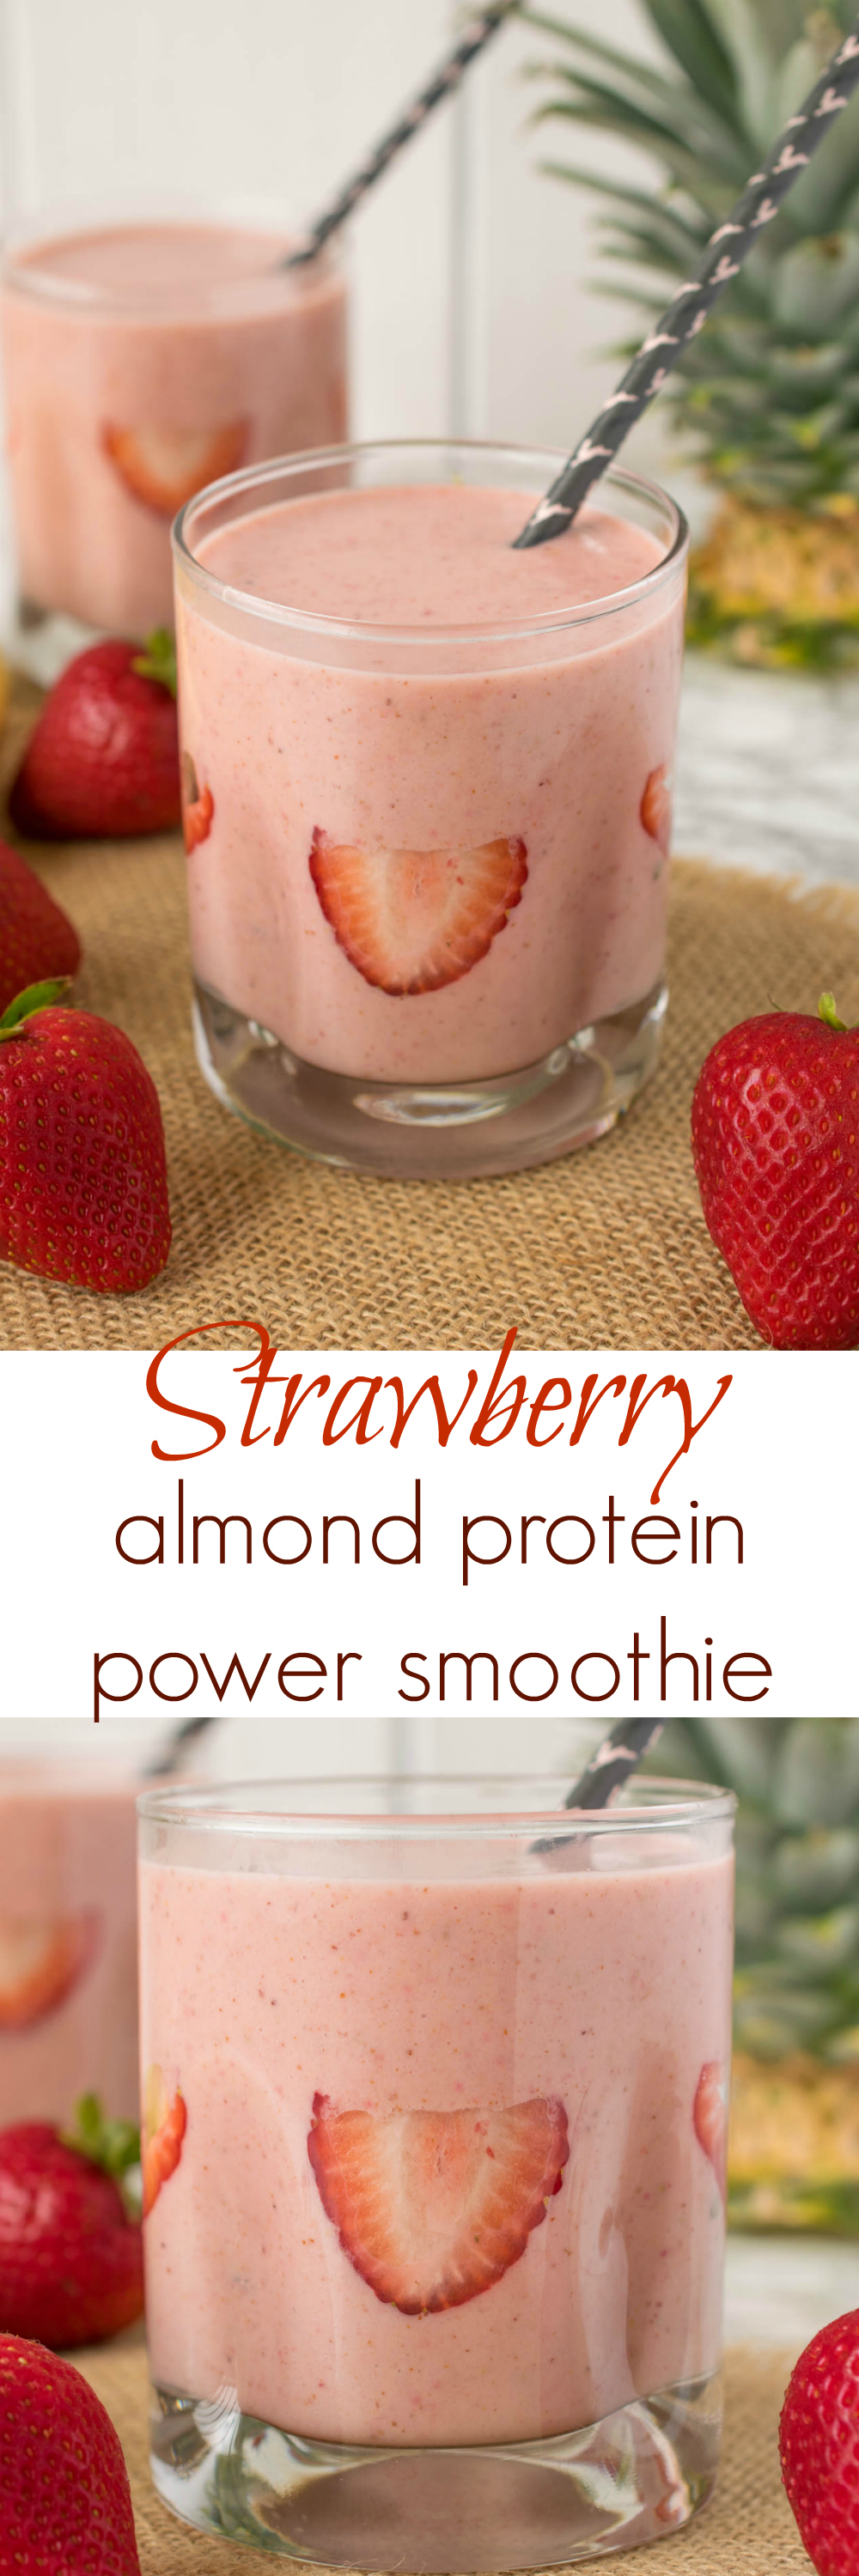 Strawberry, almond protein power smoothie. Fresh strawberries, almond butter, fresh pineapple and LALA smoothies